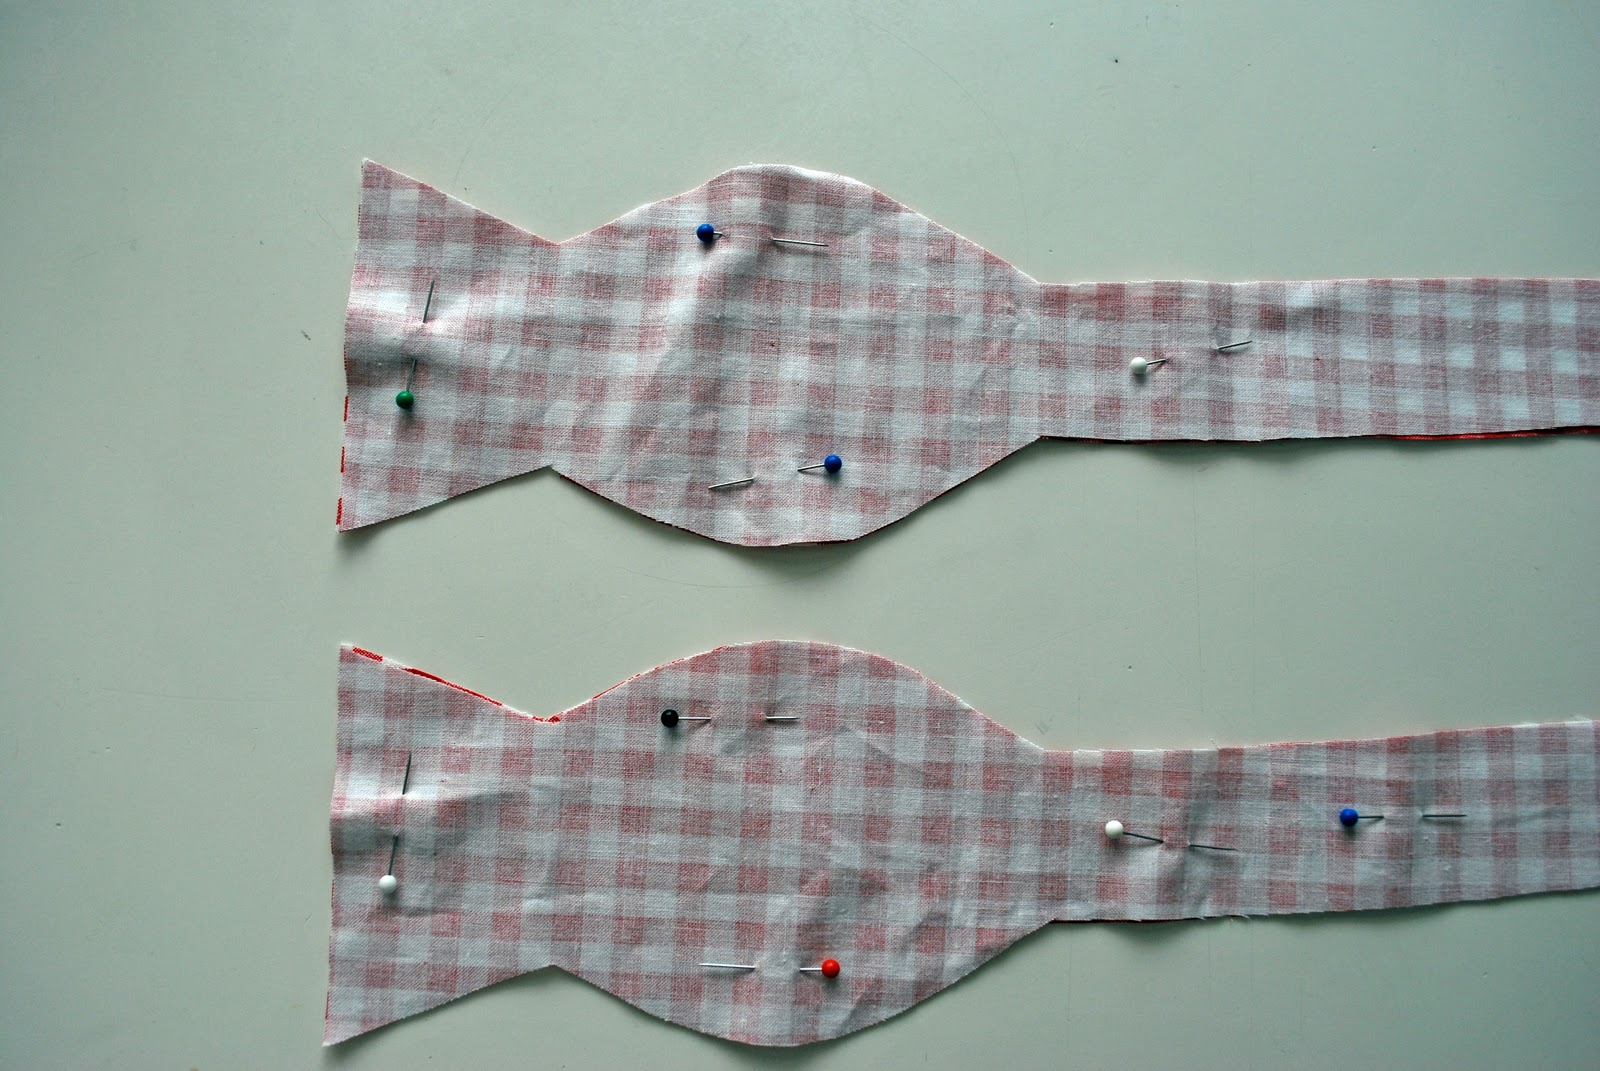 Larissa another day dapper little man bow tie tutorial starting at the neck band part sew with a 14 seam allowance all away around the outside all the way back to the opening at the band part jeuxipadfo Images